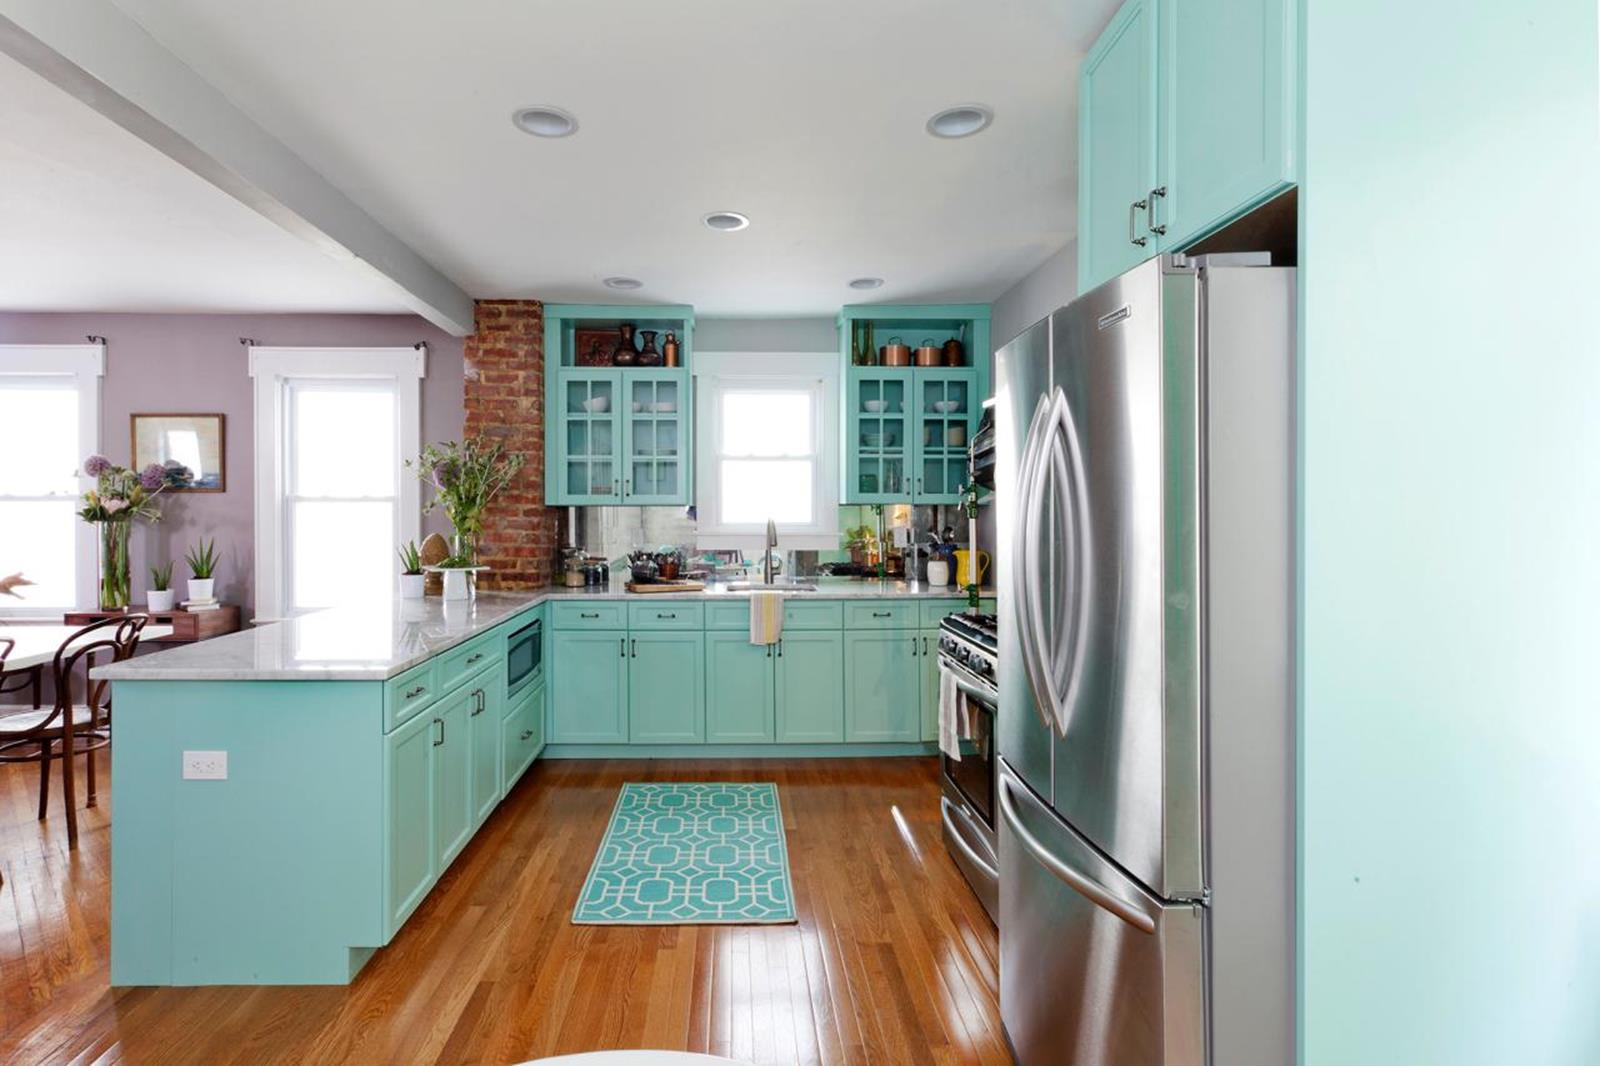 Projects to Make Kitchen More Neat and Beautiful 11